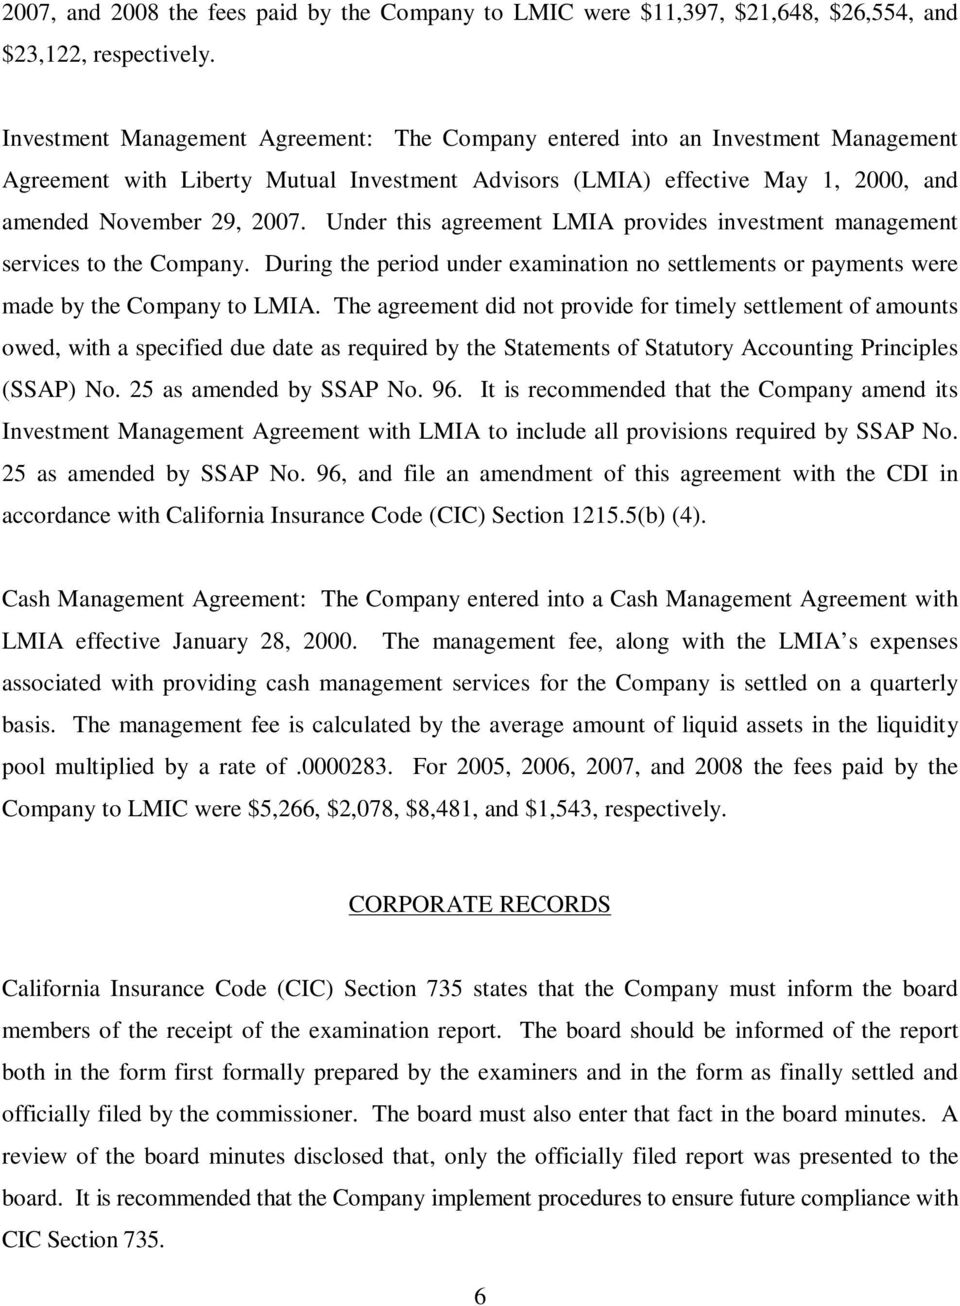 Under this agreement LMIA provides investment management services to the Company. During the period under examination no settlements or payments were made by the Company to LMIA.